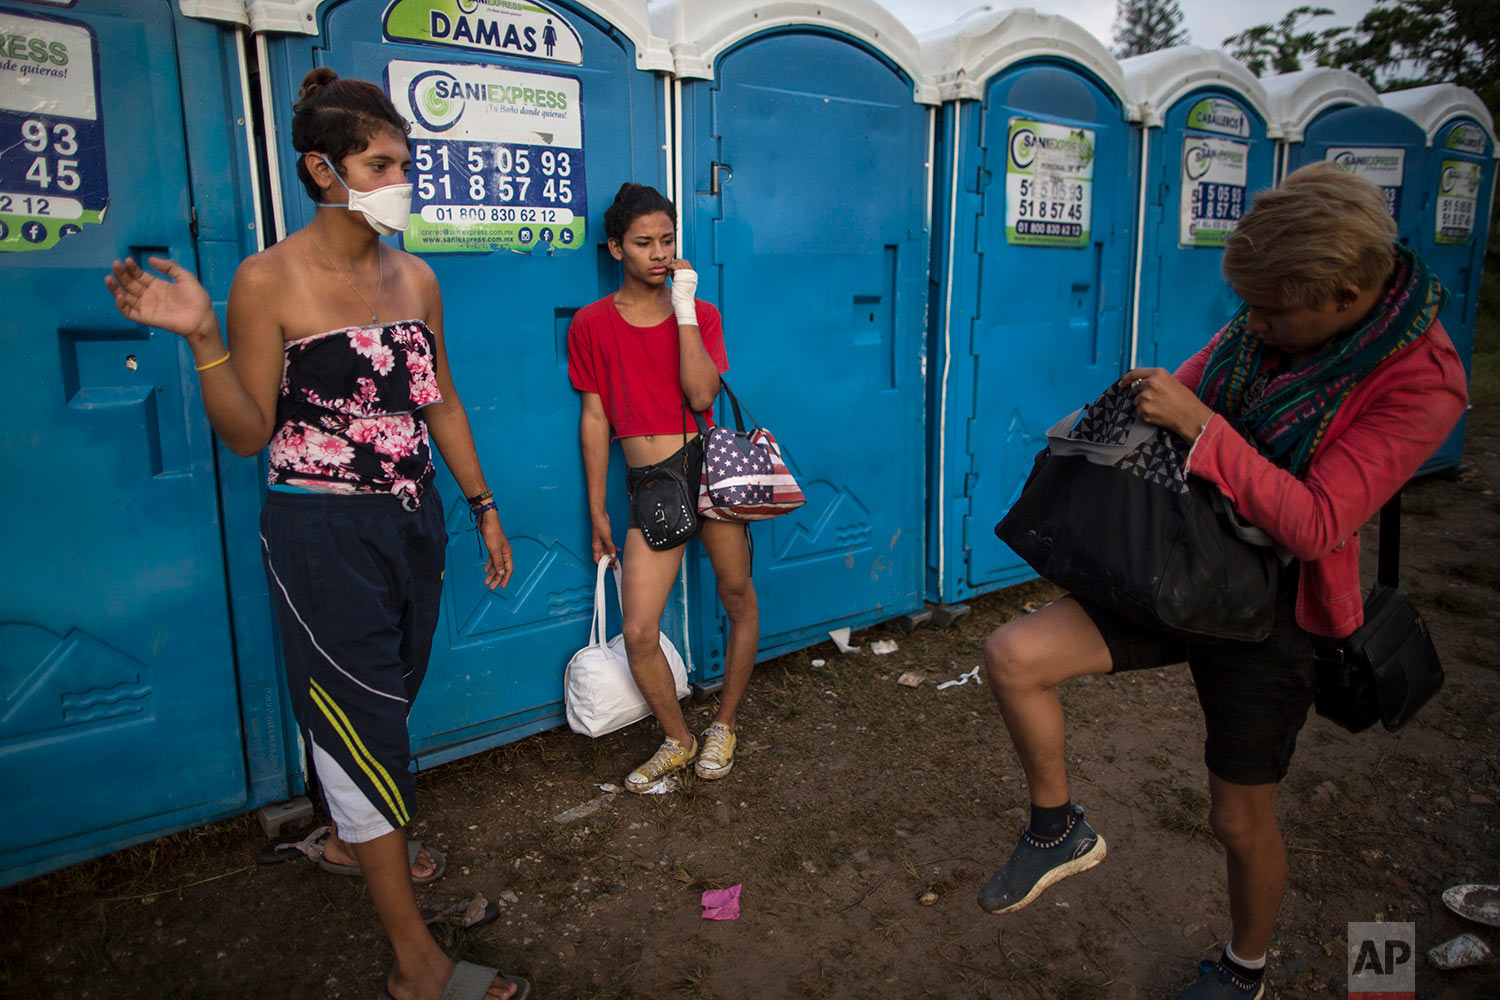 In this Nov. 1, 2018 photo, Valentina Guerrero, of El Salvador, right, and Sinai Cortez, from Nicaragua, center, part of about 50 LGBTQ migrants who are traveling with the caravan hoping to reach the U.S. border, wait their turn to use a portable toilet at a temporary shelter in Donaji, Mexico. (AP Photo/Rodrigo Abd)